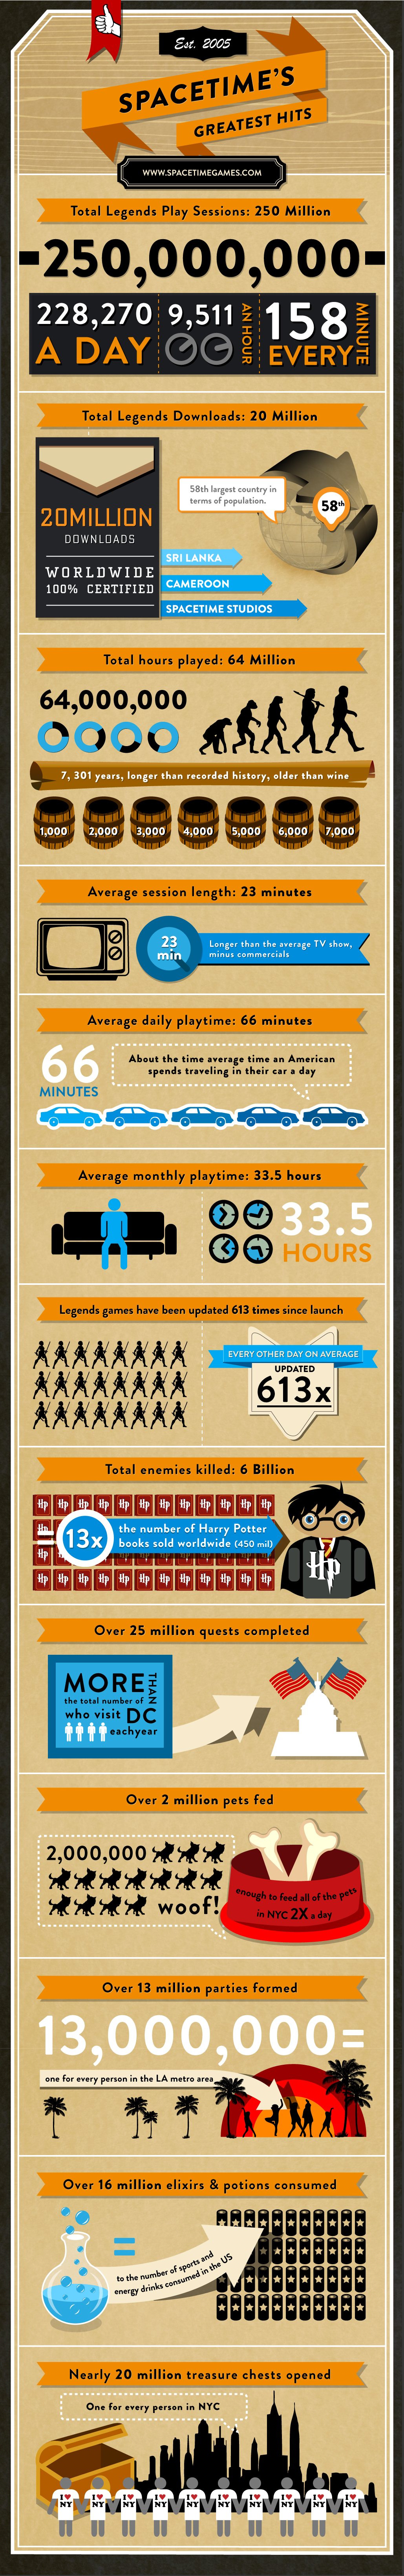 Spacetime Studios celebrates 260 million play sessions with massive infographic